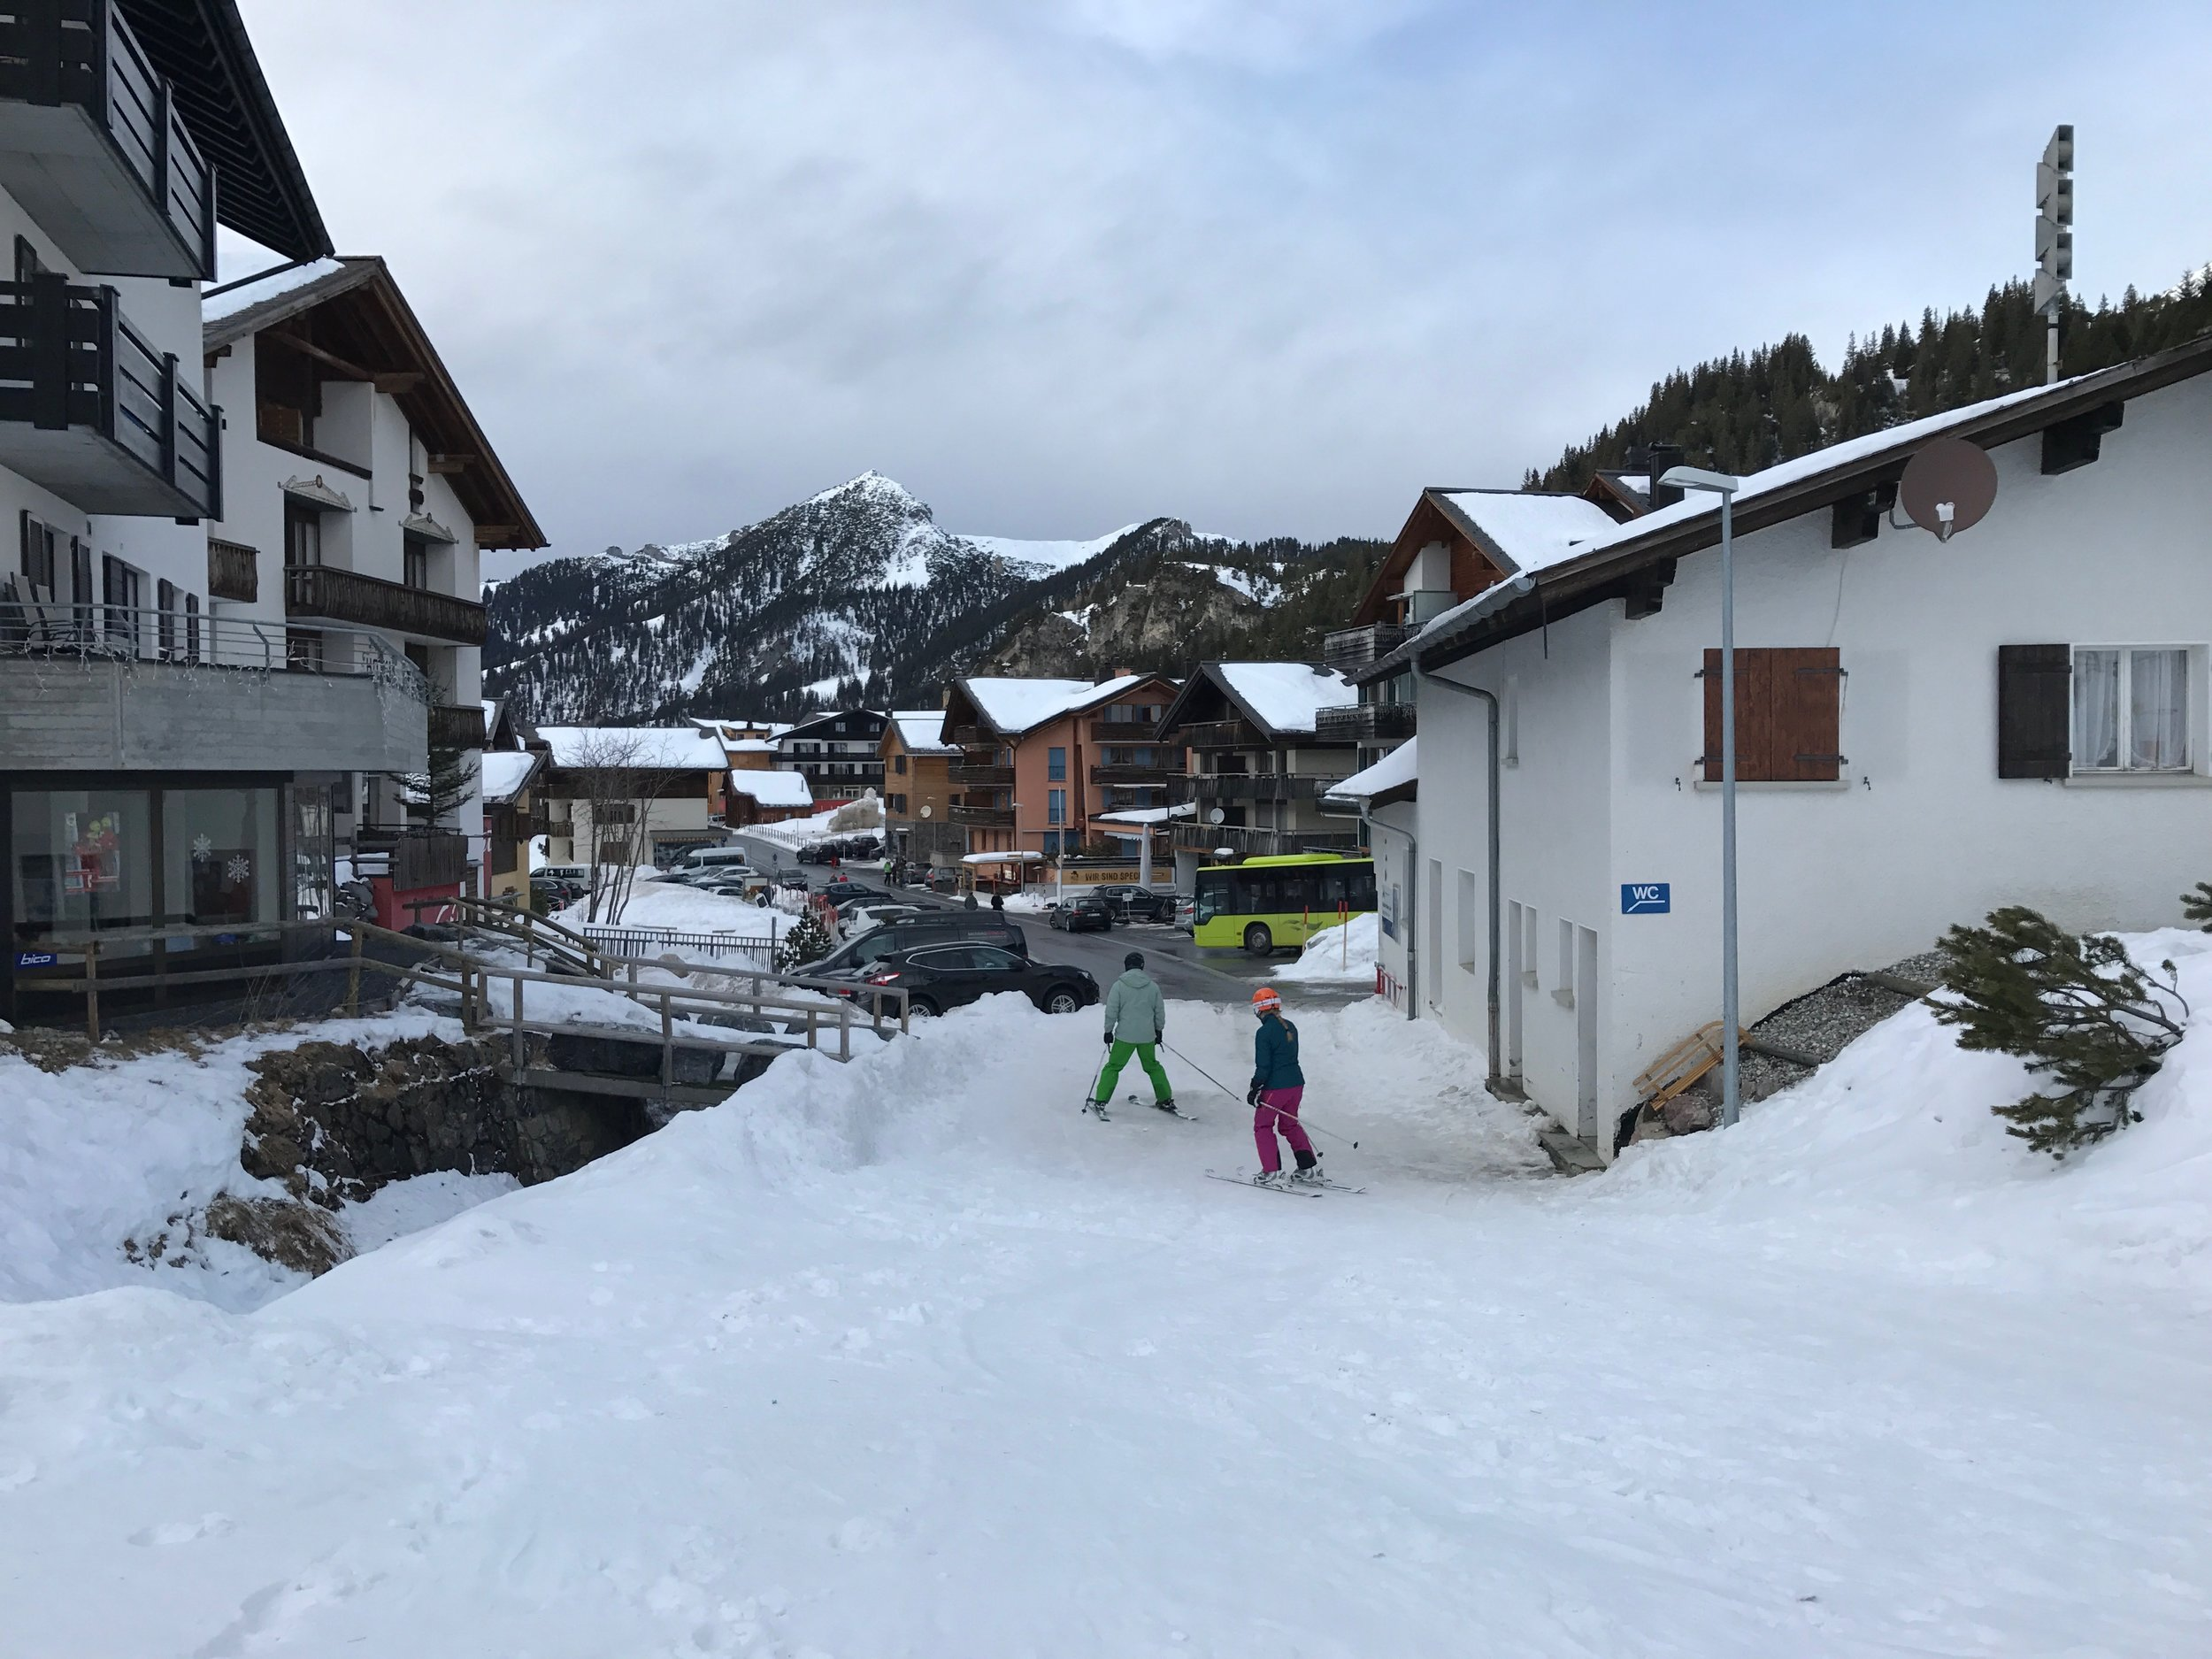 We arrived in the resort village of Malbun and had to be careful to dodge the skiers.